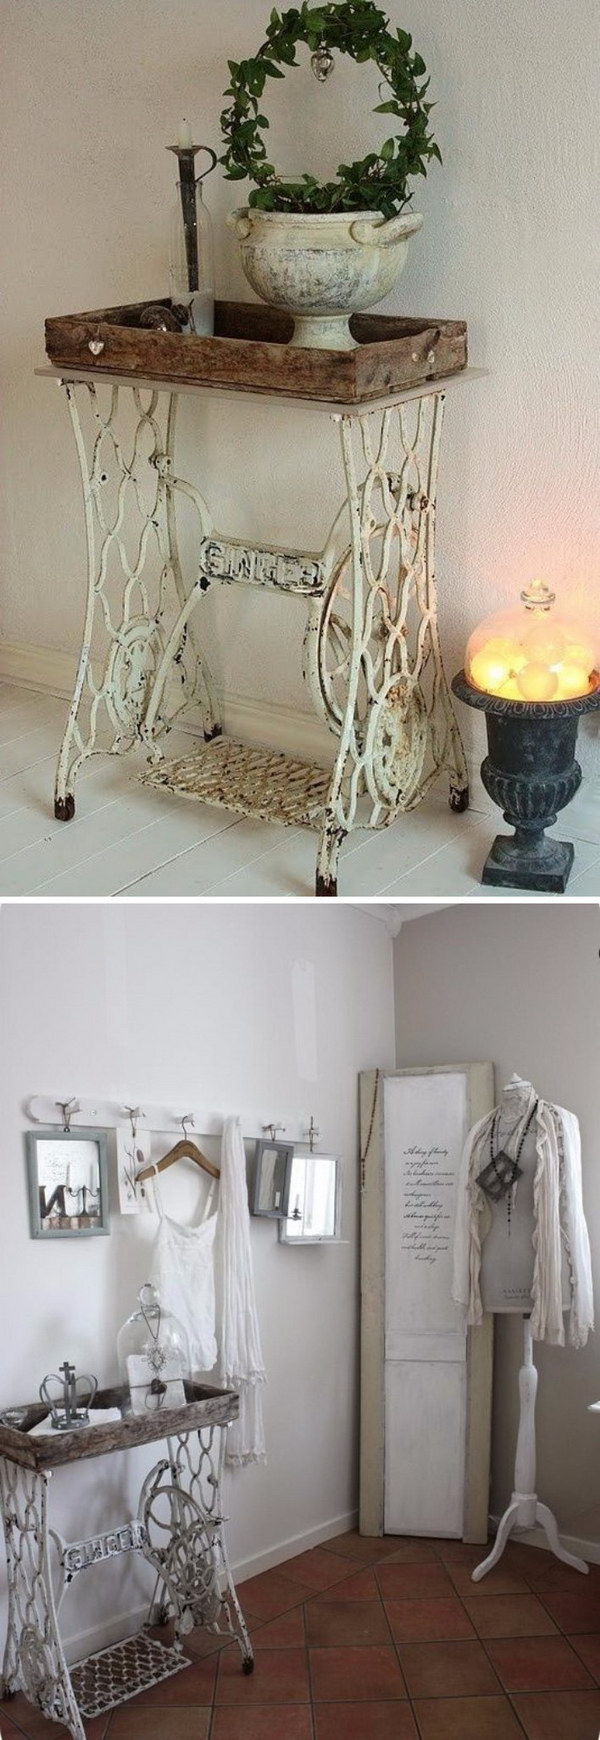 4 Shabby Chic Singer Sewing Machine Table